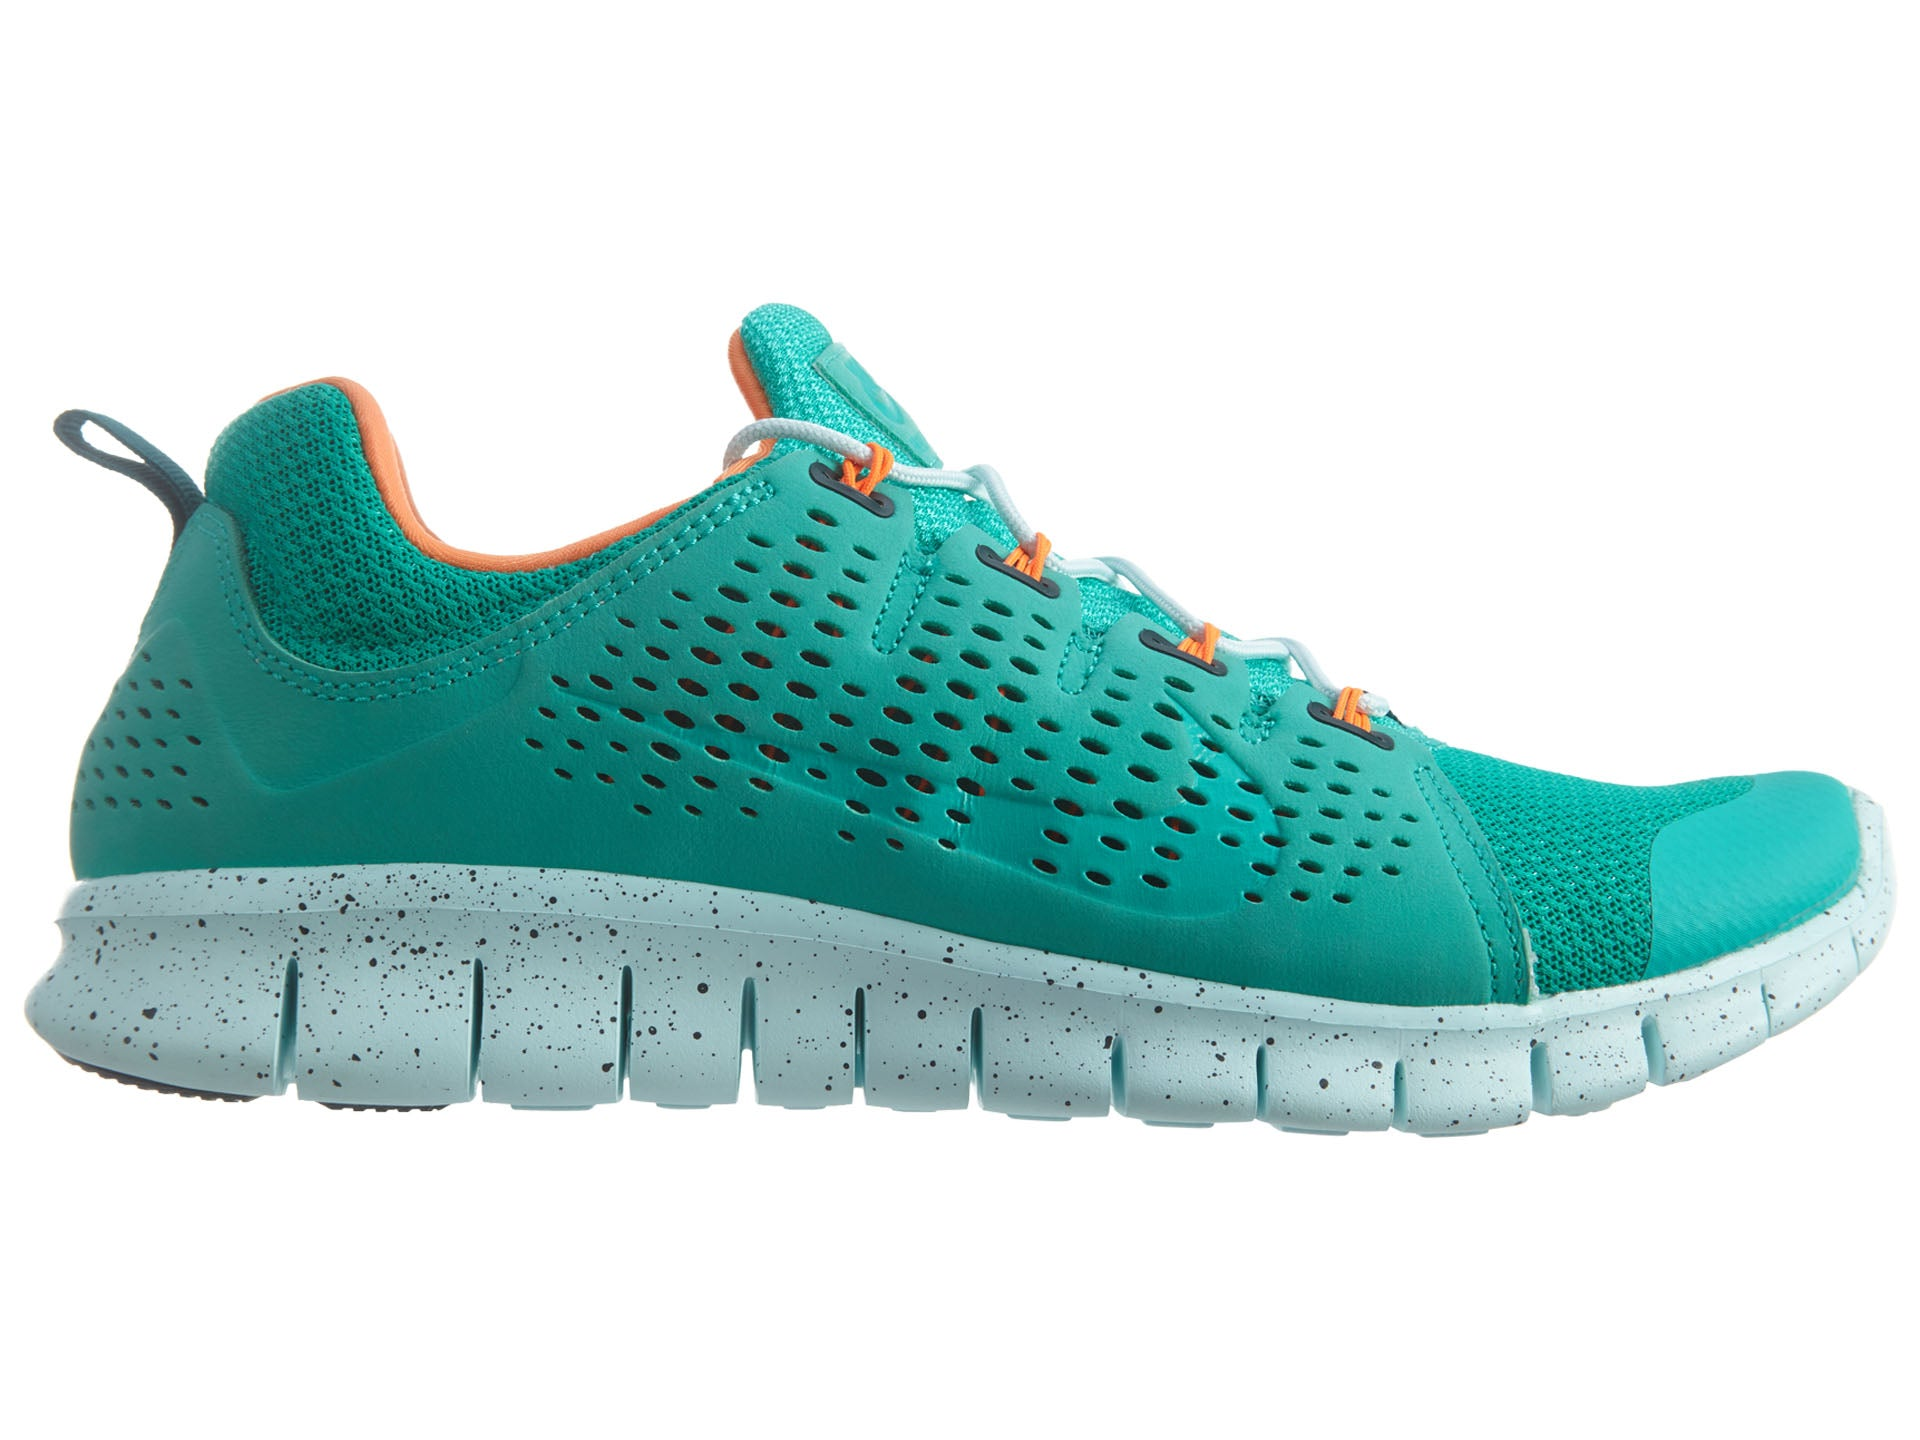 Nike Free Powerlines 2 Atomic Teal Shoes For Women Lebron 14 Limited ... f68bb627e2